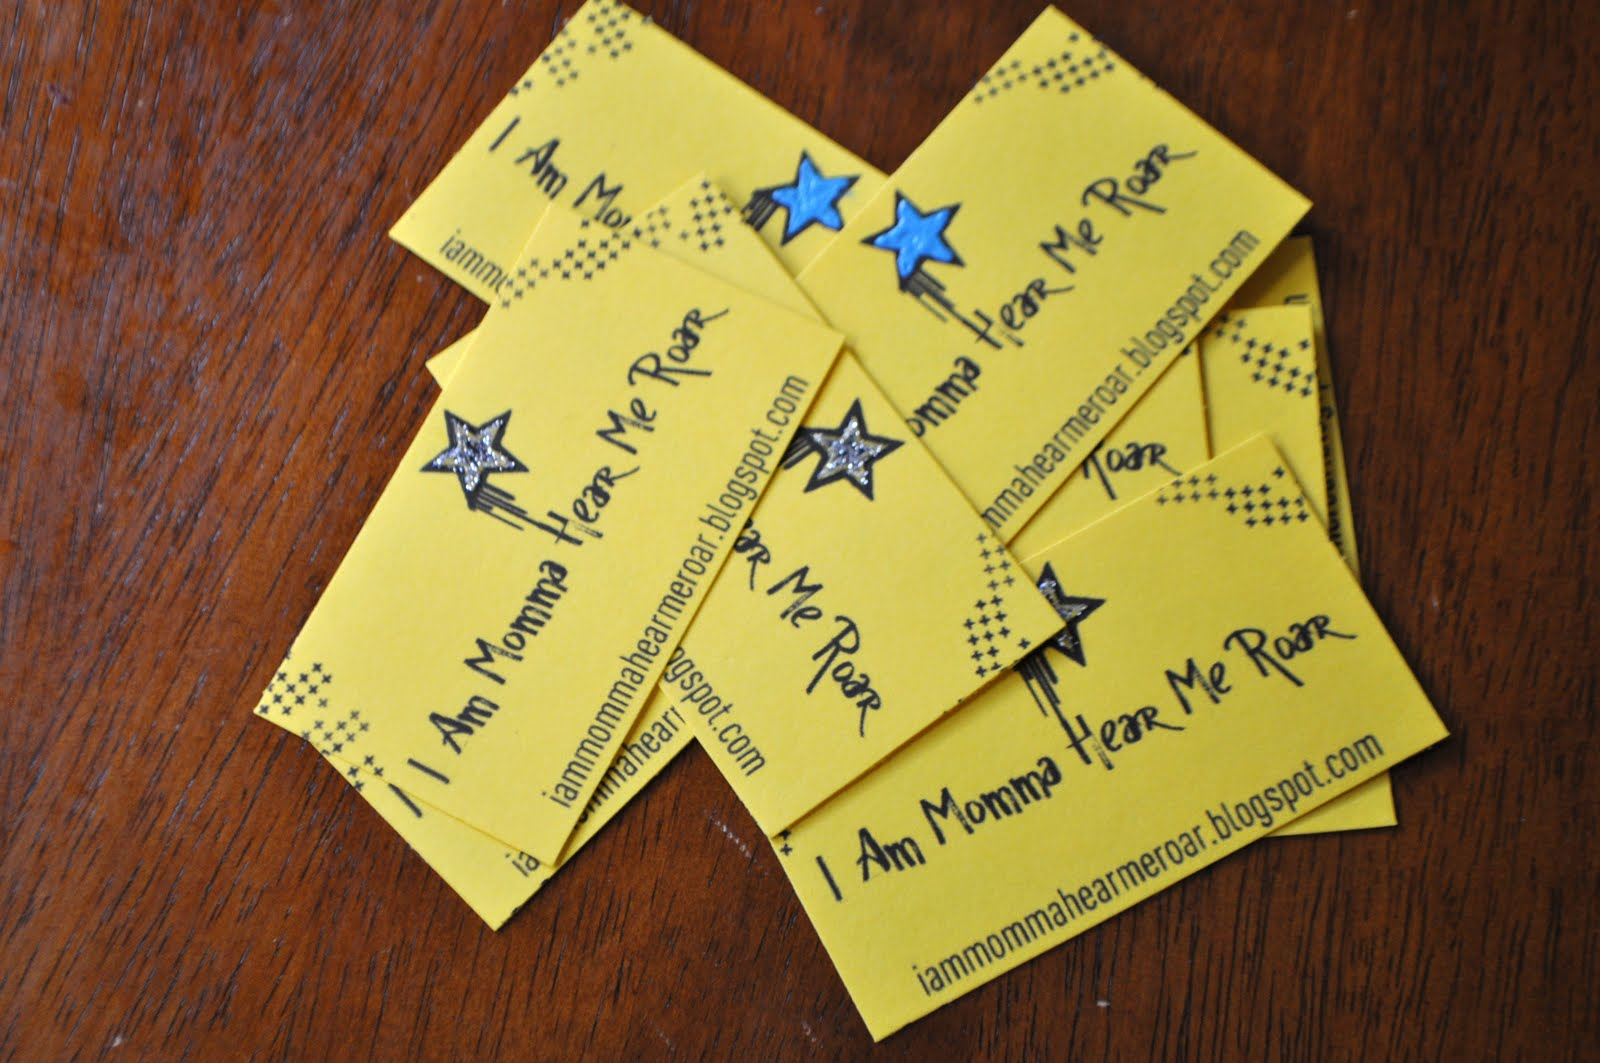 I am momma hear me roar diy business cards they were fun and easy to make they still have a professional look and a pop of color but without paying for it reheart Gallery